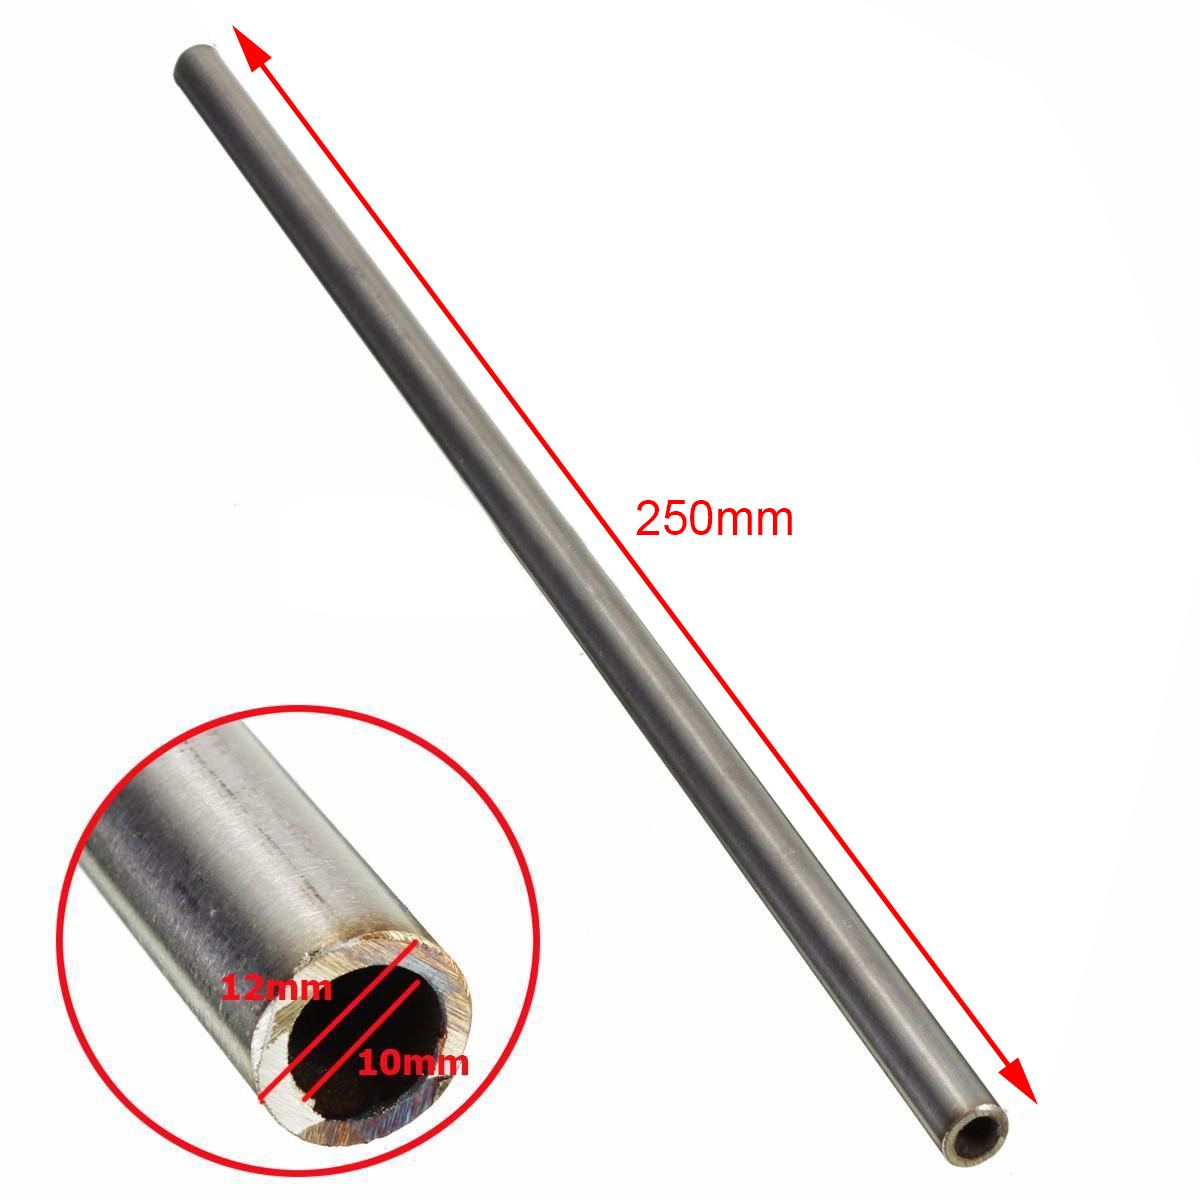 1pc Silver 304 Stainless Steel Capillary Tube 12mm OD 10mm ID 250mm Length Mayitr 5pcs 304 stainless seamless steel capillary tube od 5mm x 3mm id length 250mm polished surface rust protection popular